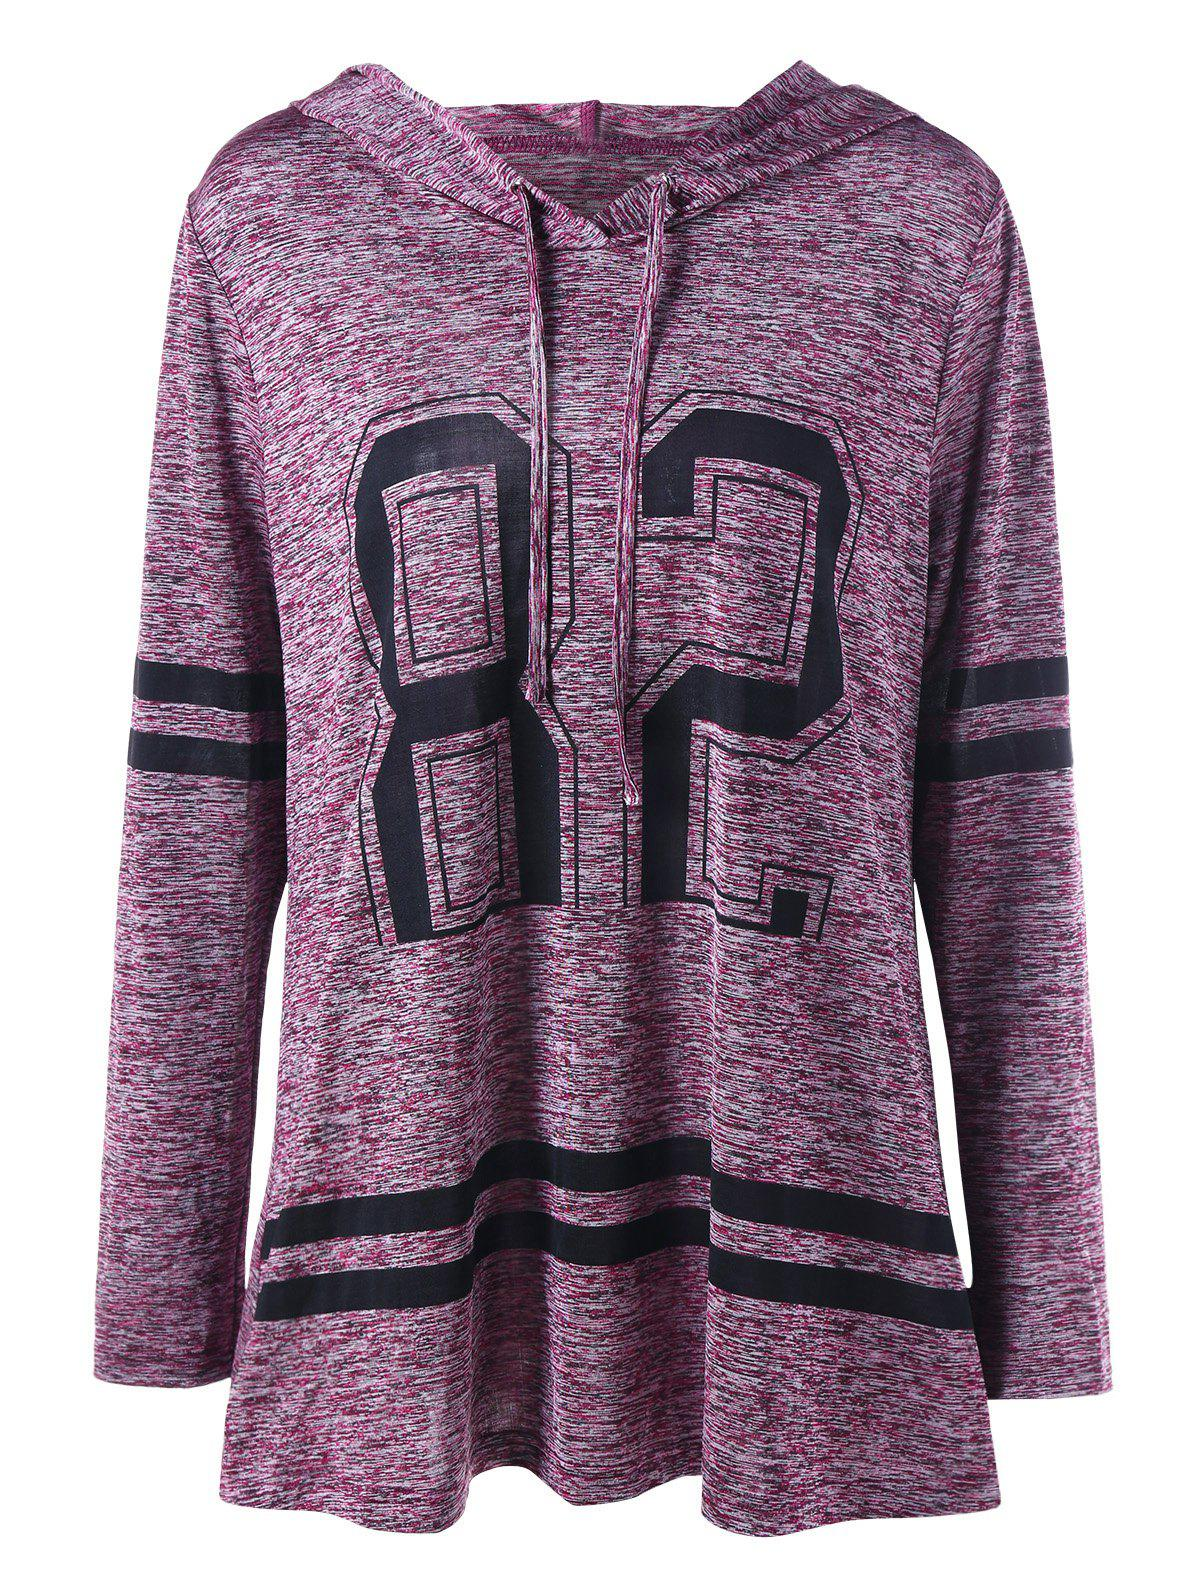 Plus Size Graphic Marled Tunic HoodieWOMEN<br><br>Size: 4XL; Color: PURPLISH RED; Material: Polyester,Spandex; Shirt Length: Long; Sleeve Length: Full; Style: Casual; Pattern Style: Others; Season: Fall,Spring; Weight: 0.3100kg; Package Contents: 1 x Hoodie;